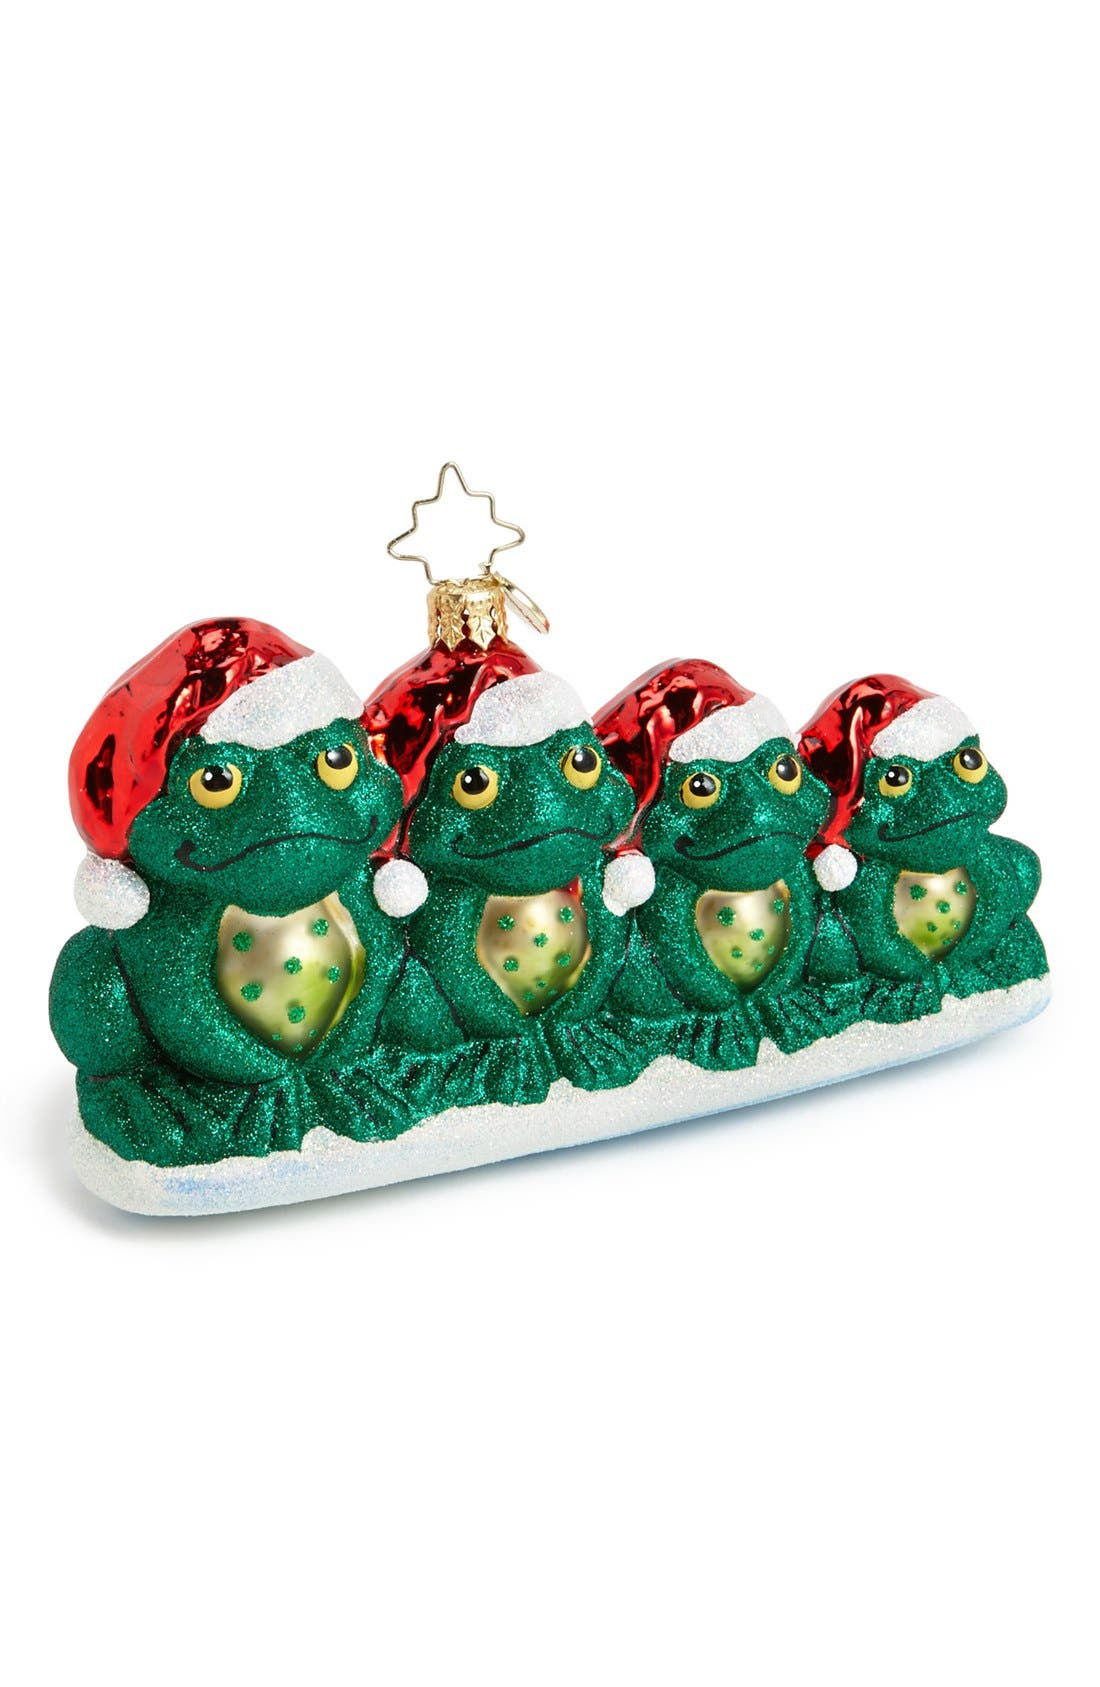 Main Image - Christopher Radko 'Wish You a Froggy Christmas' Ornament